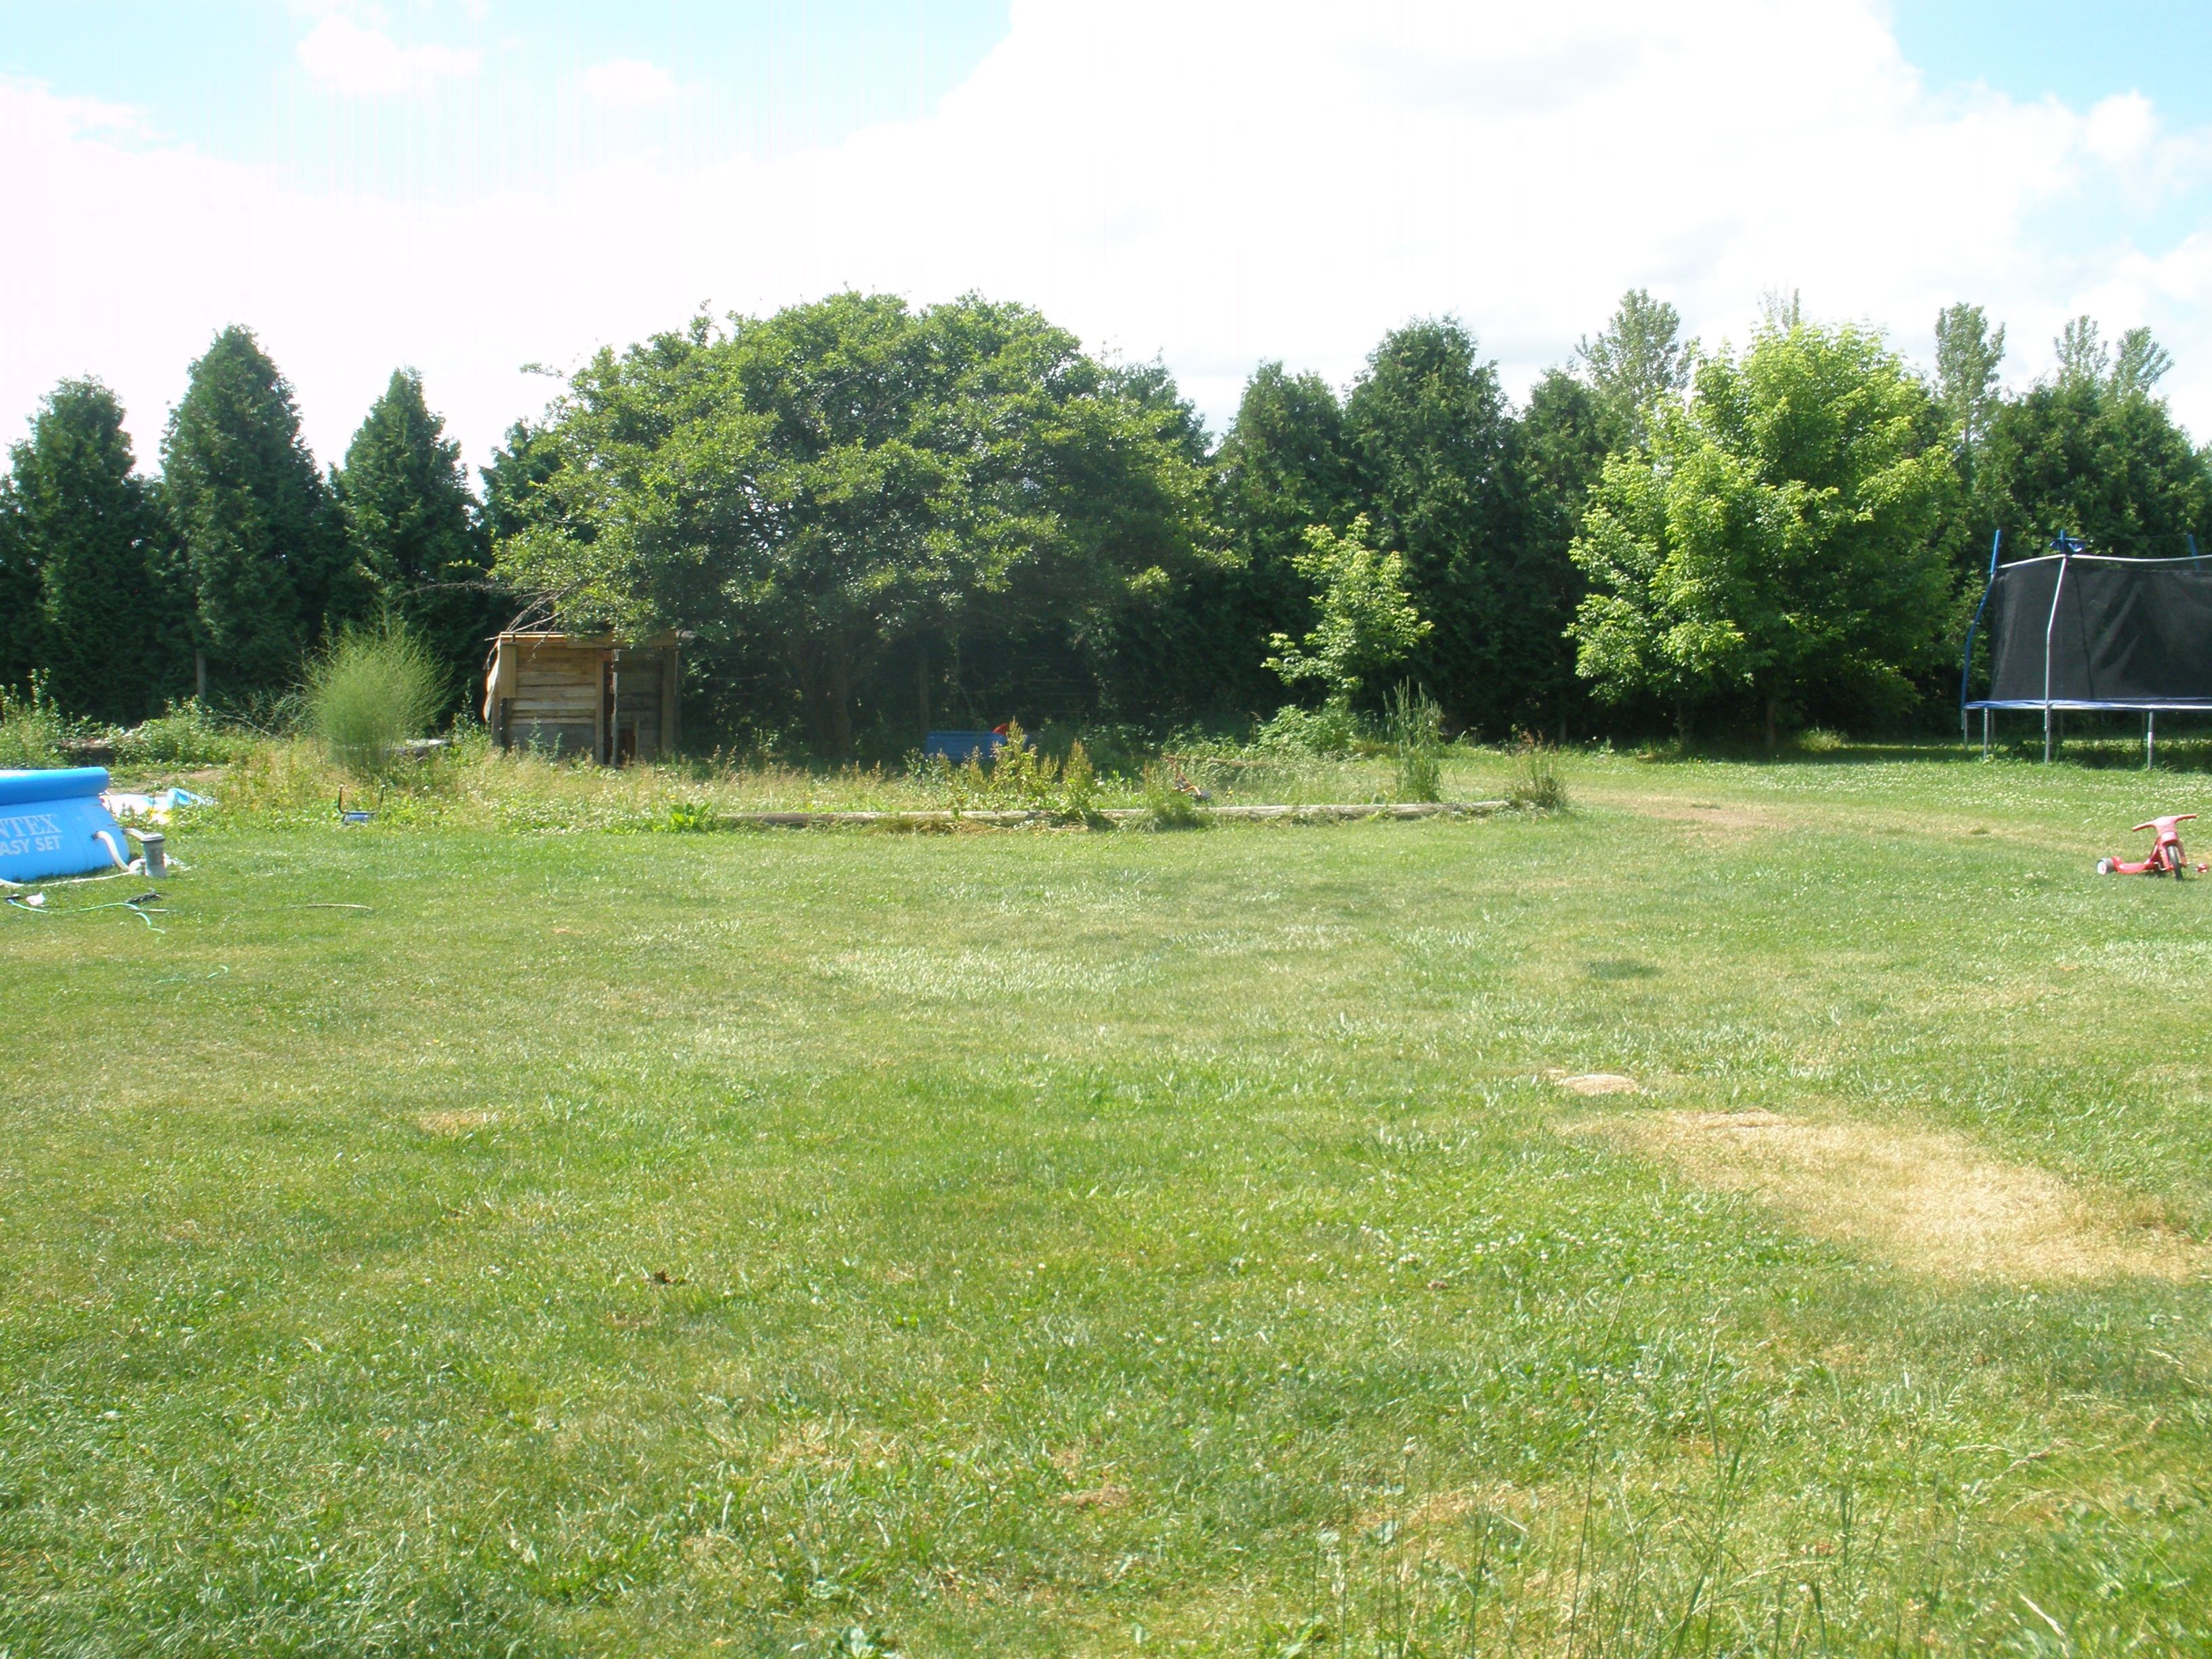 2139-2141 Holtz Rd. (Image - 3)